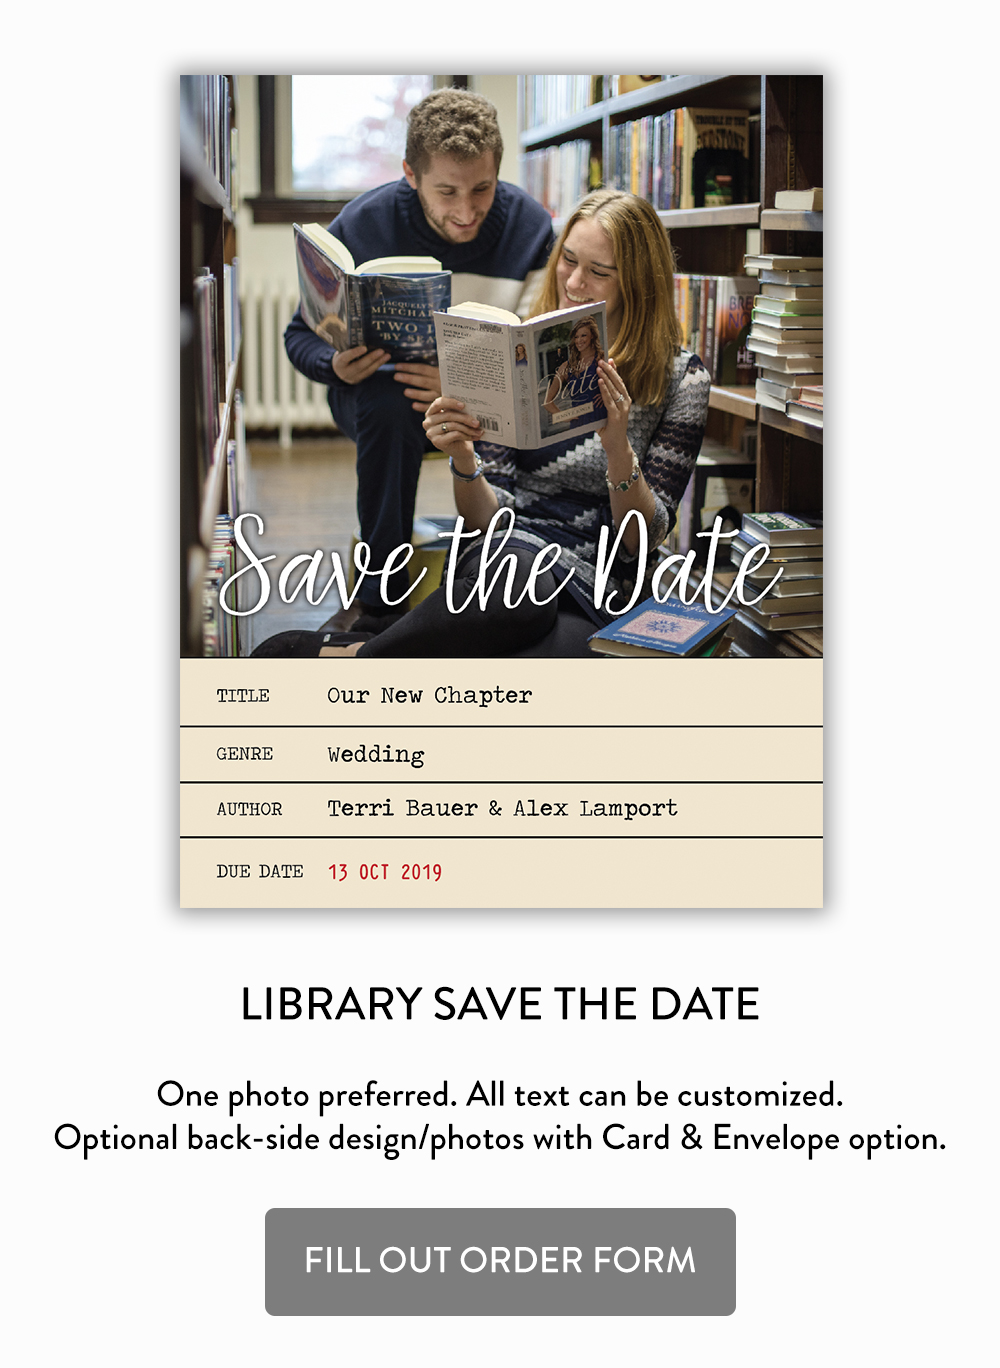 Library-SavetheDate.jpg